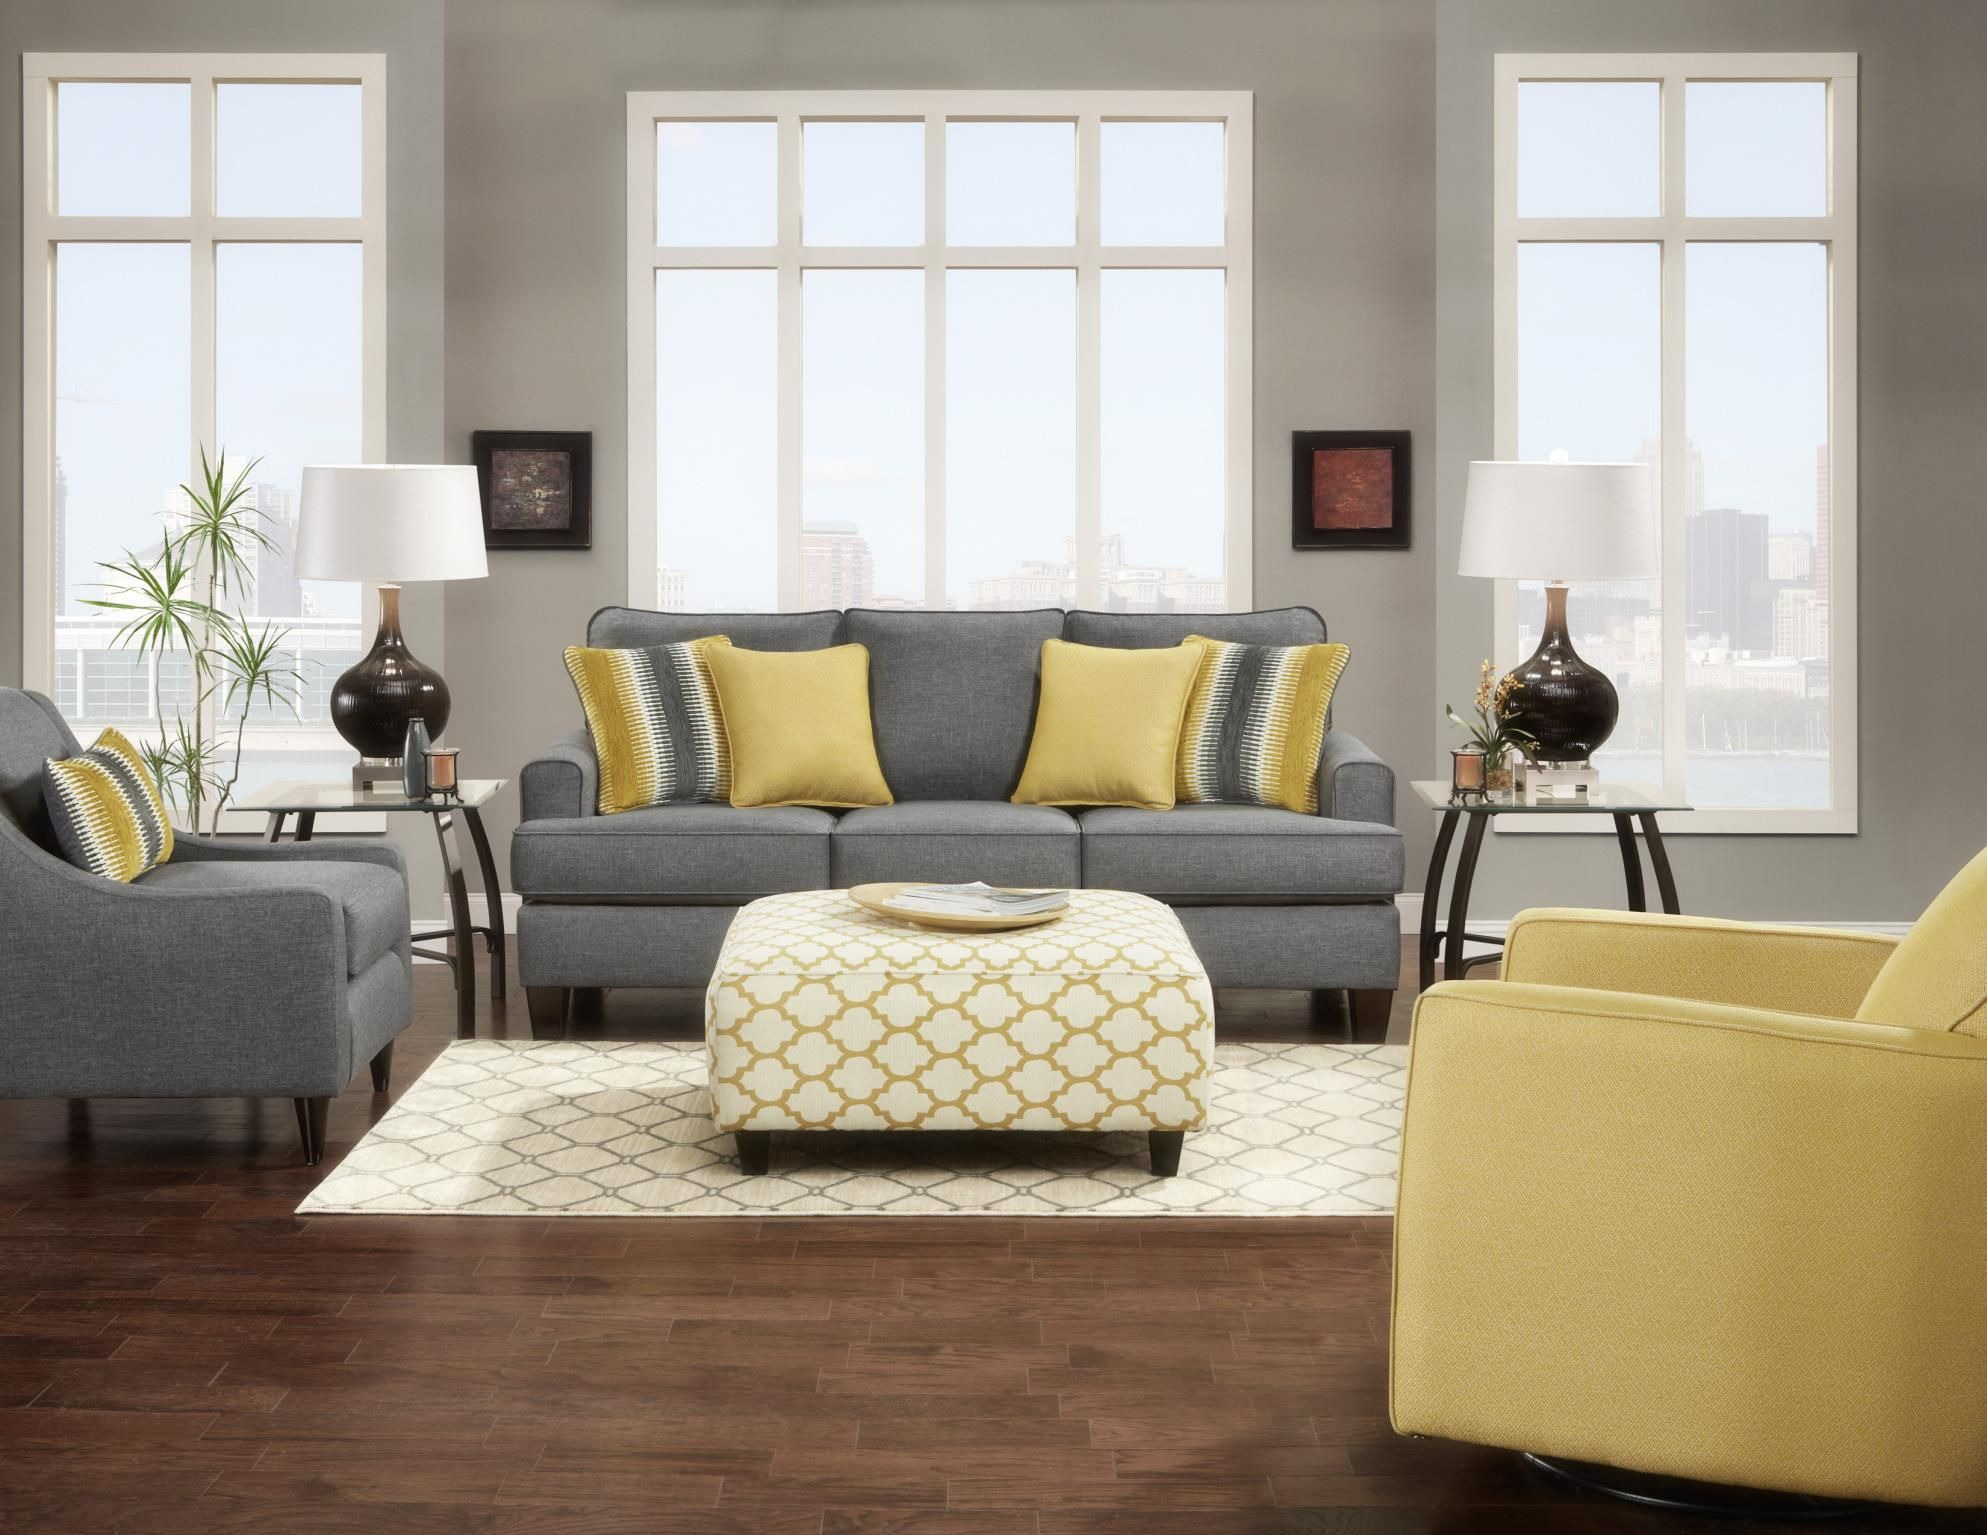 Maxwell Grey Sofa And Love Seat Matching Accent Chair Available Set 1099 00 Sofa Grey And Yellow Living Room Grey Living Room Sets Living Room Accents